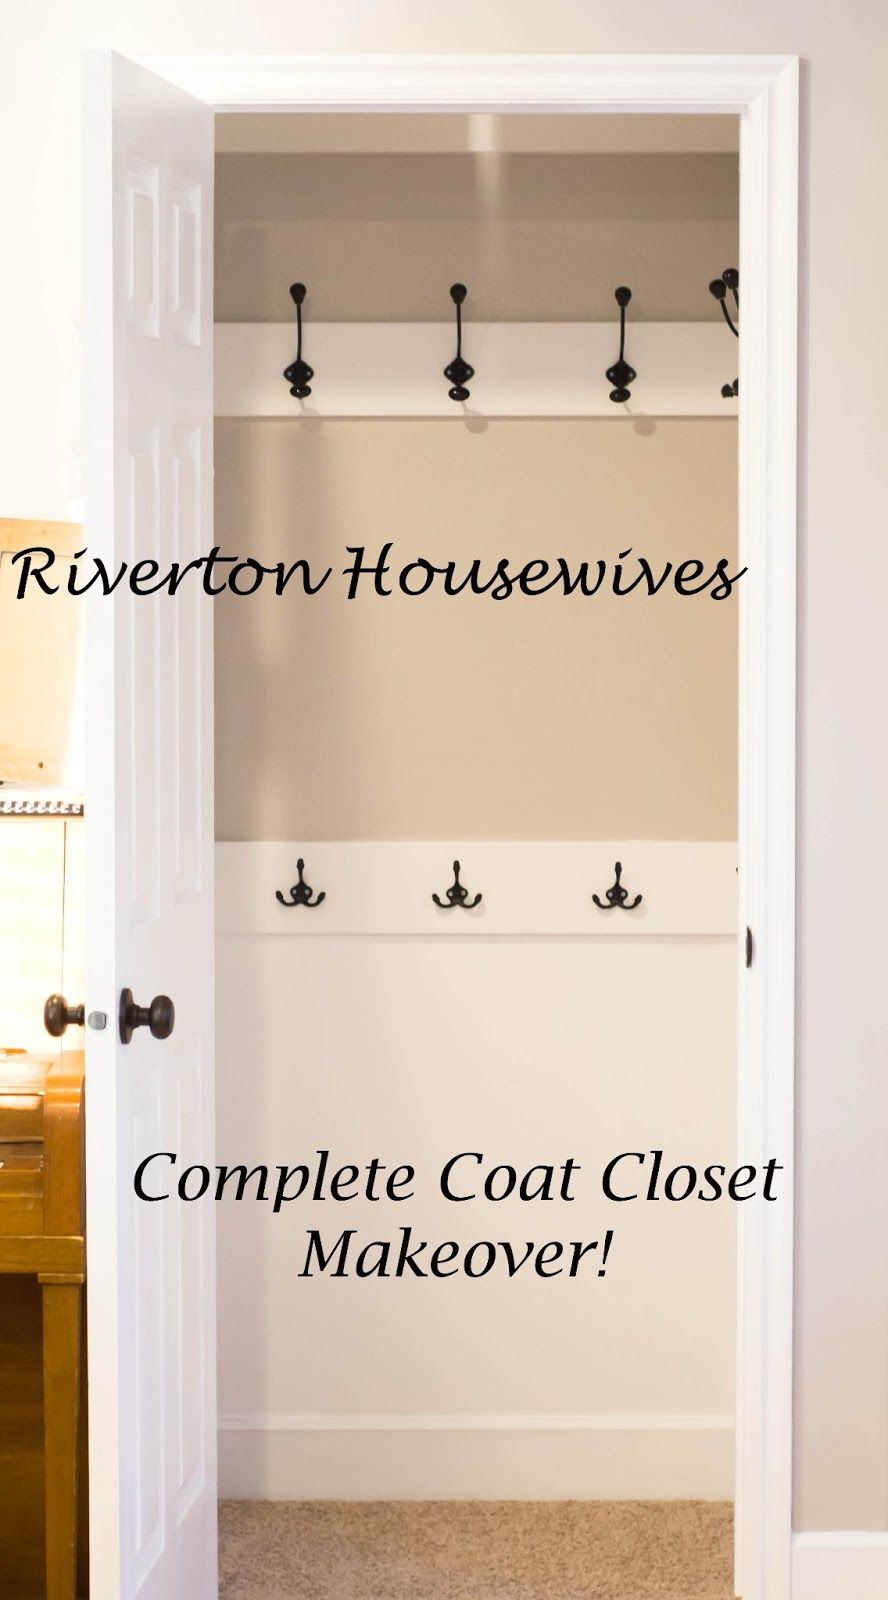 Coat Closet Makeover Tutorial This Is My Goal For Hall Right Inside The Front Door Time To Check Out Hobby Lobby S Hooks And Hangers